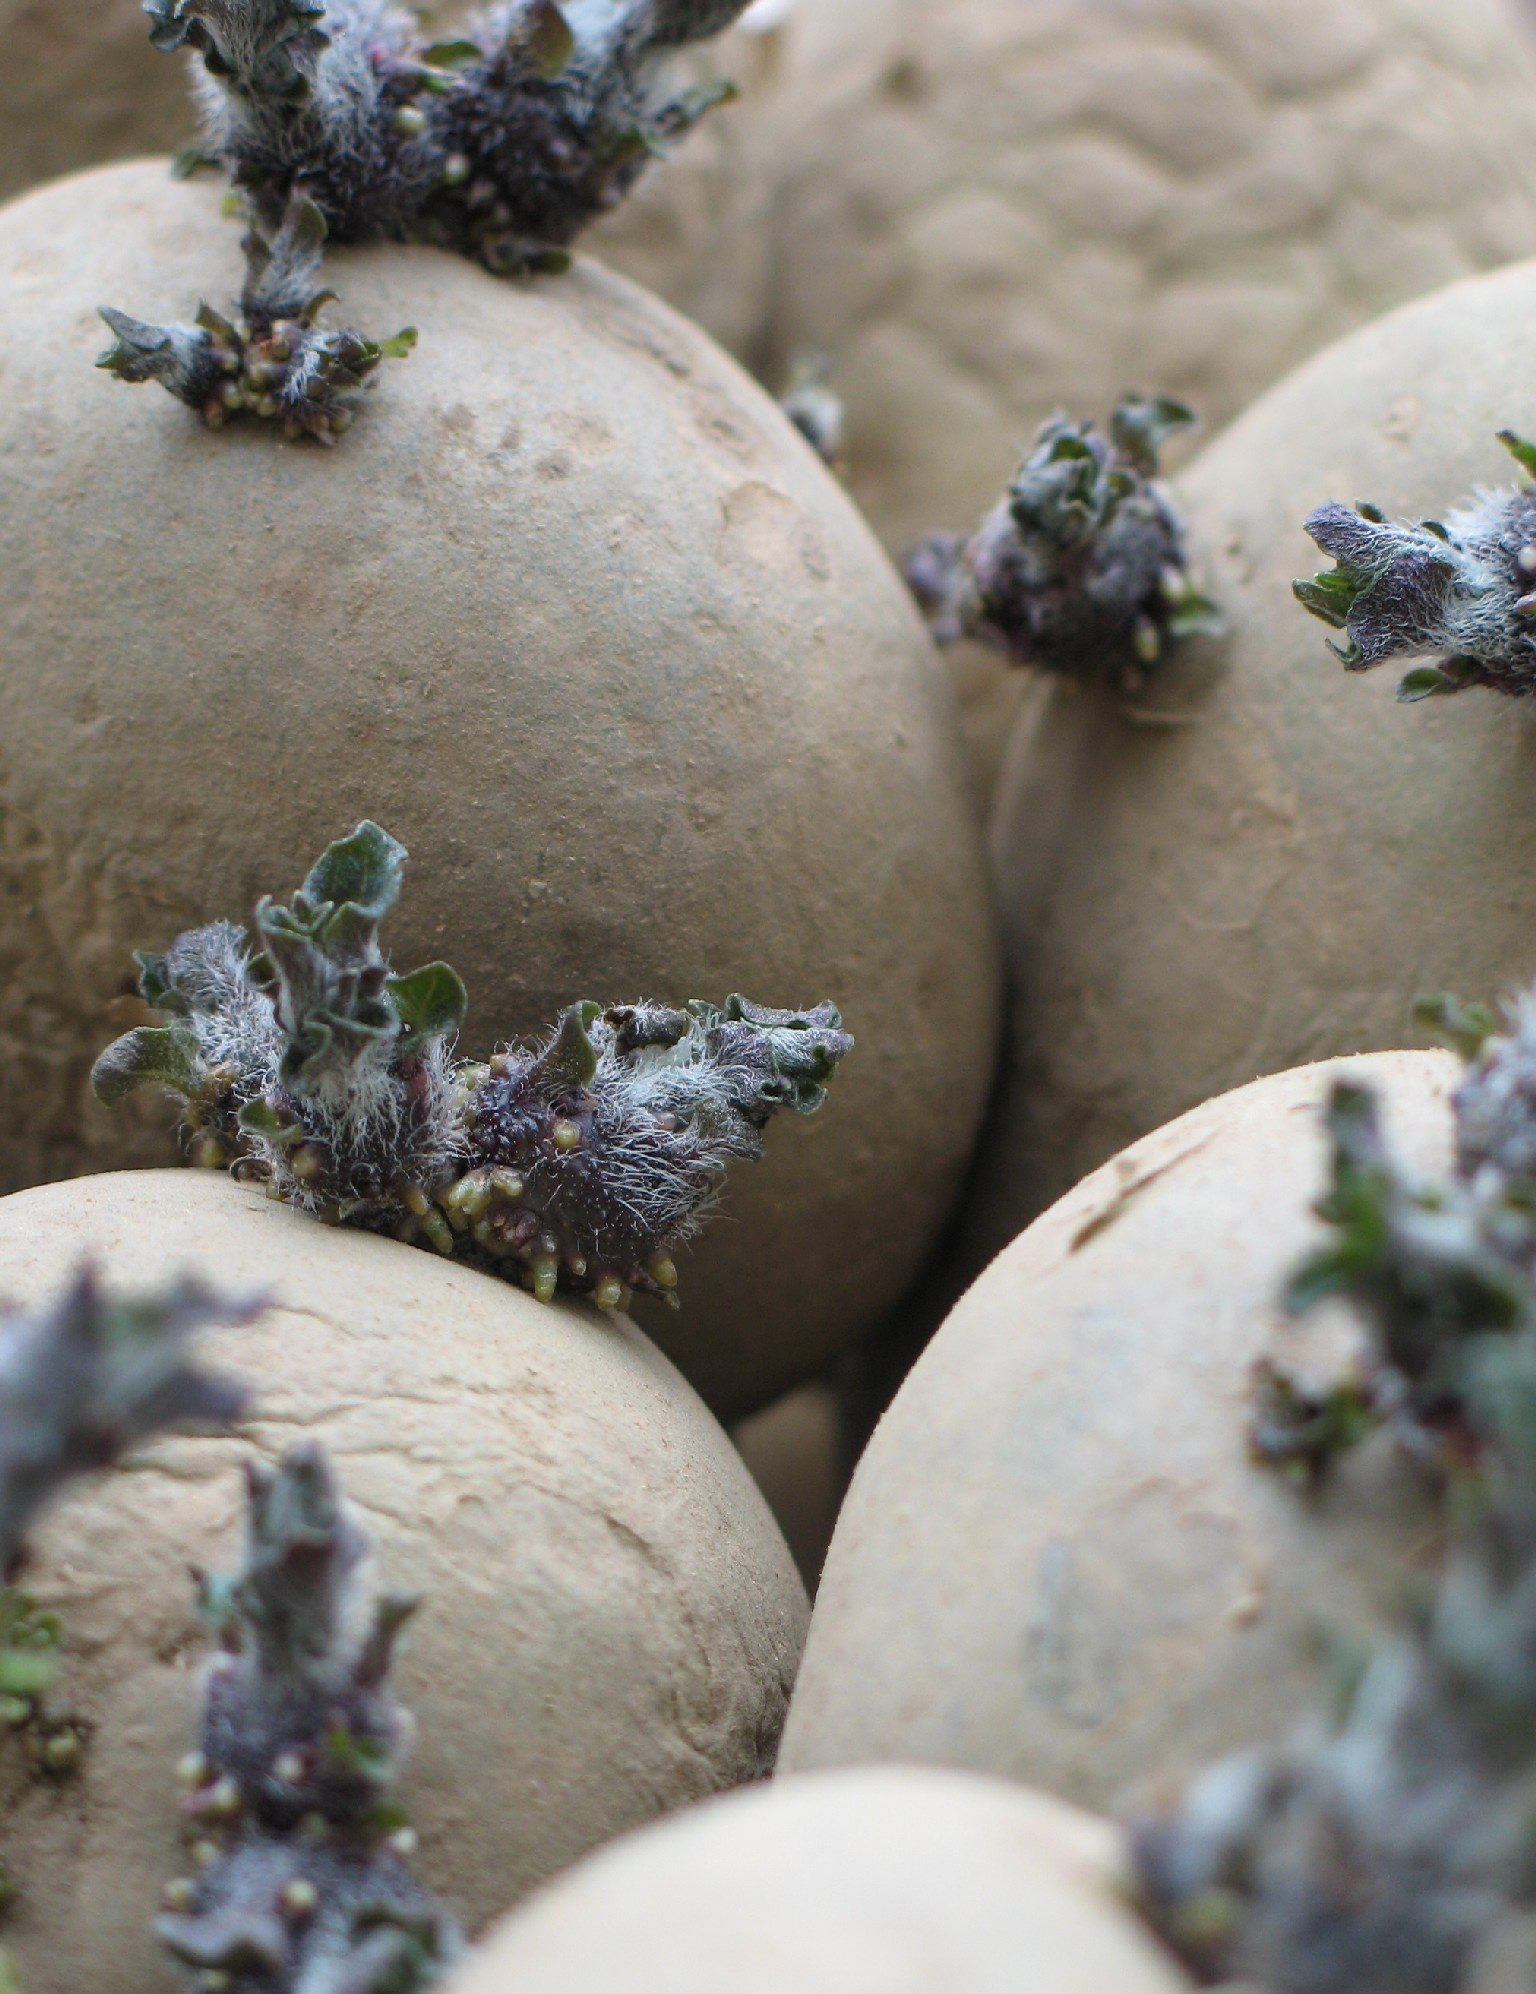 Scotland currently produces 75% of the UK's seed potatoes